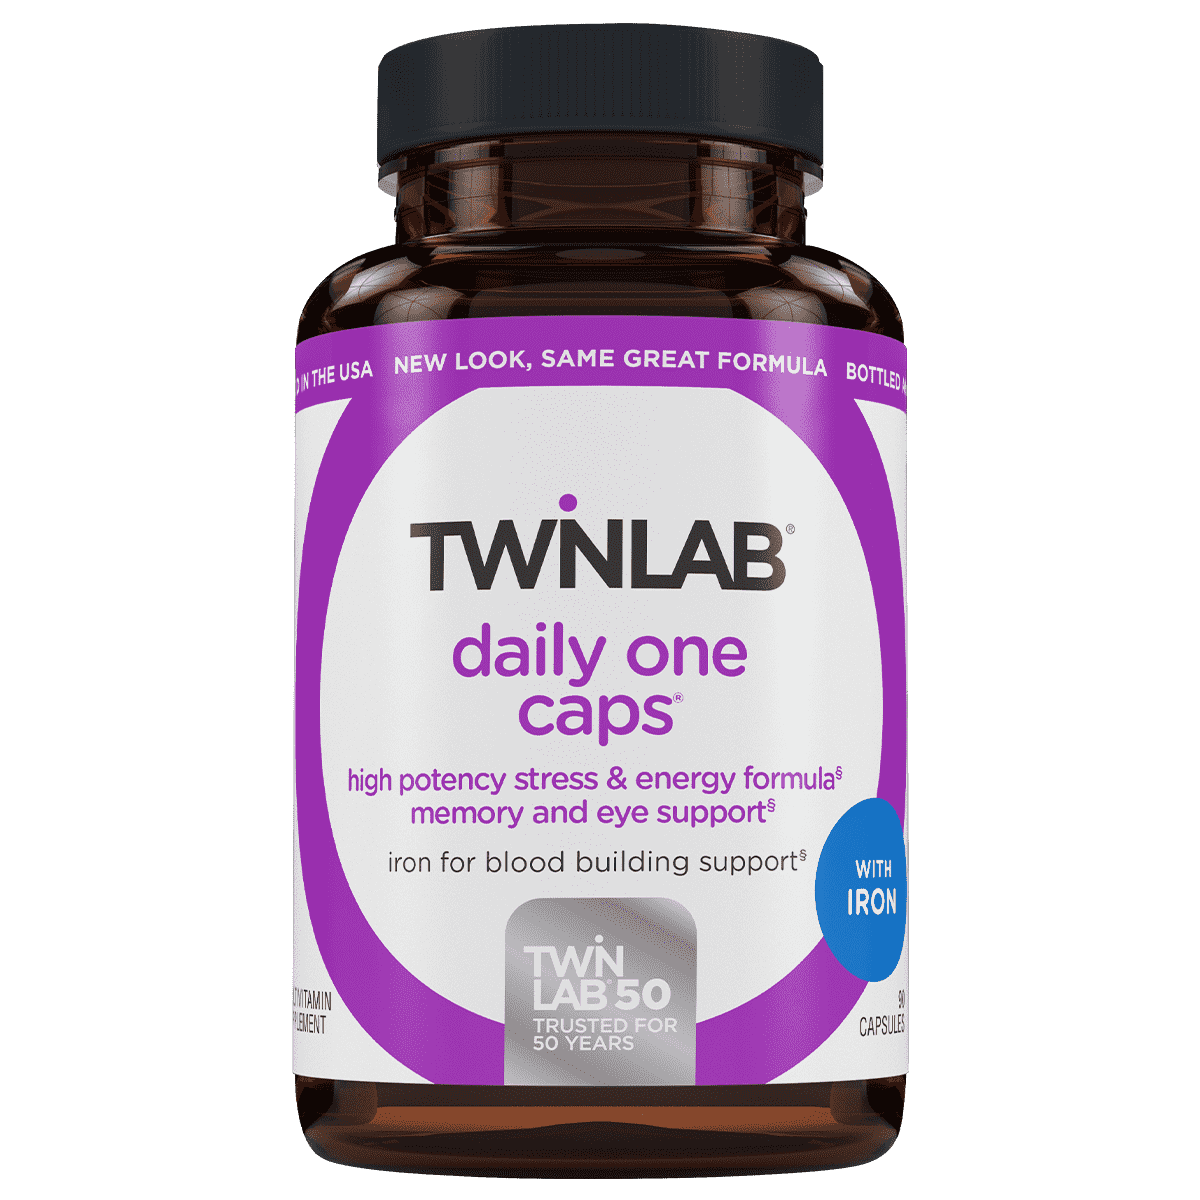 90 count Twinlab® Daily One Caps with Iron contain a blend of 26 nutrients with extra folic acid to support heart & eye health.